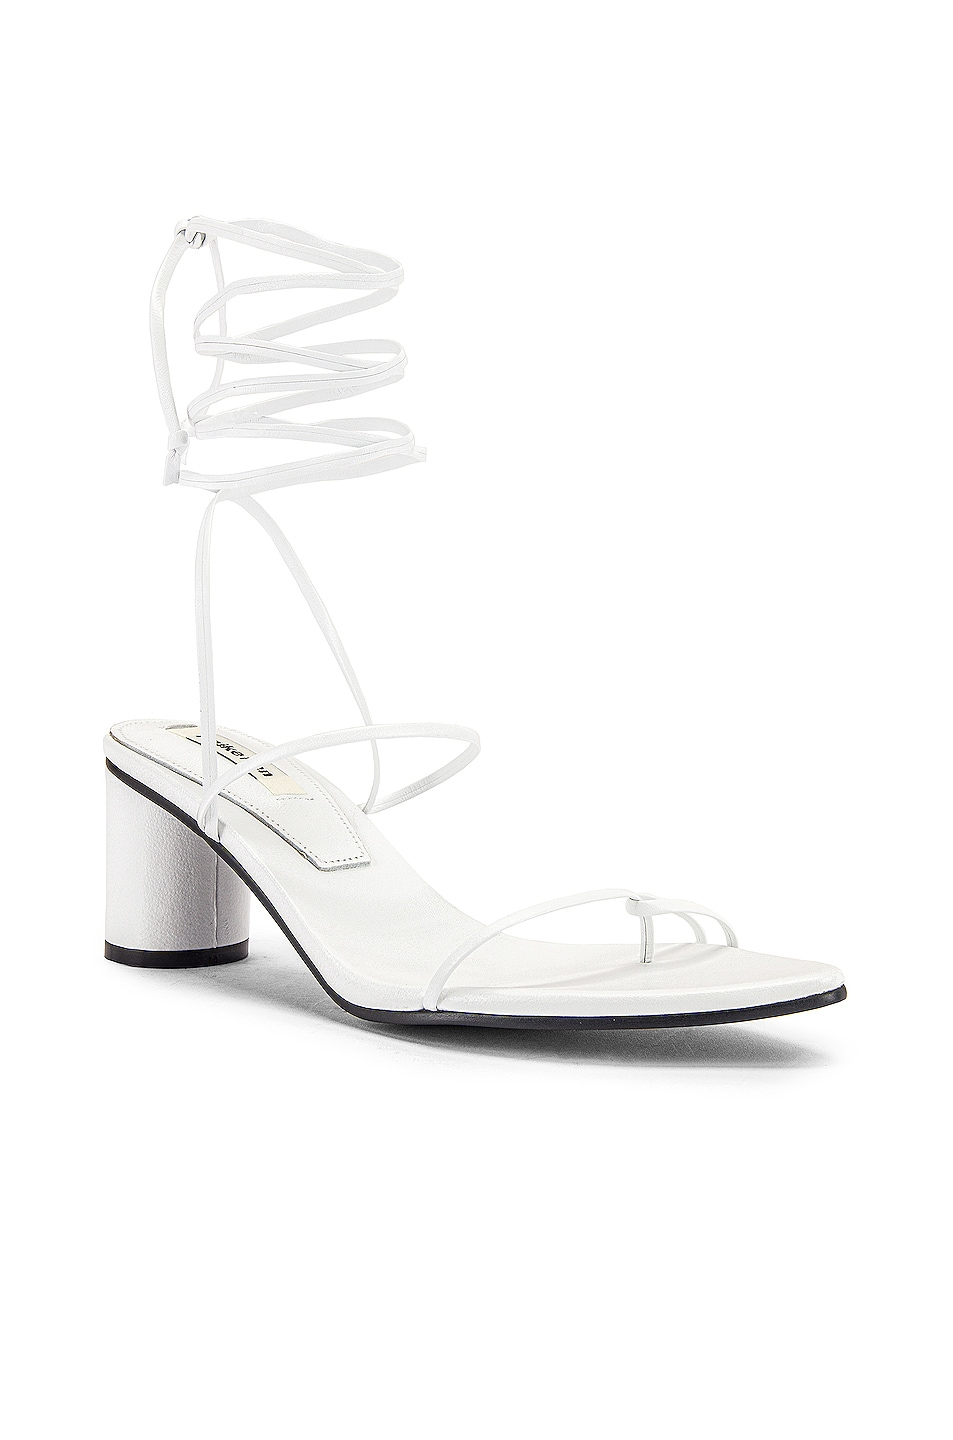 Image 3 of Reike Nen Odd Pair Heels in White